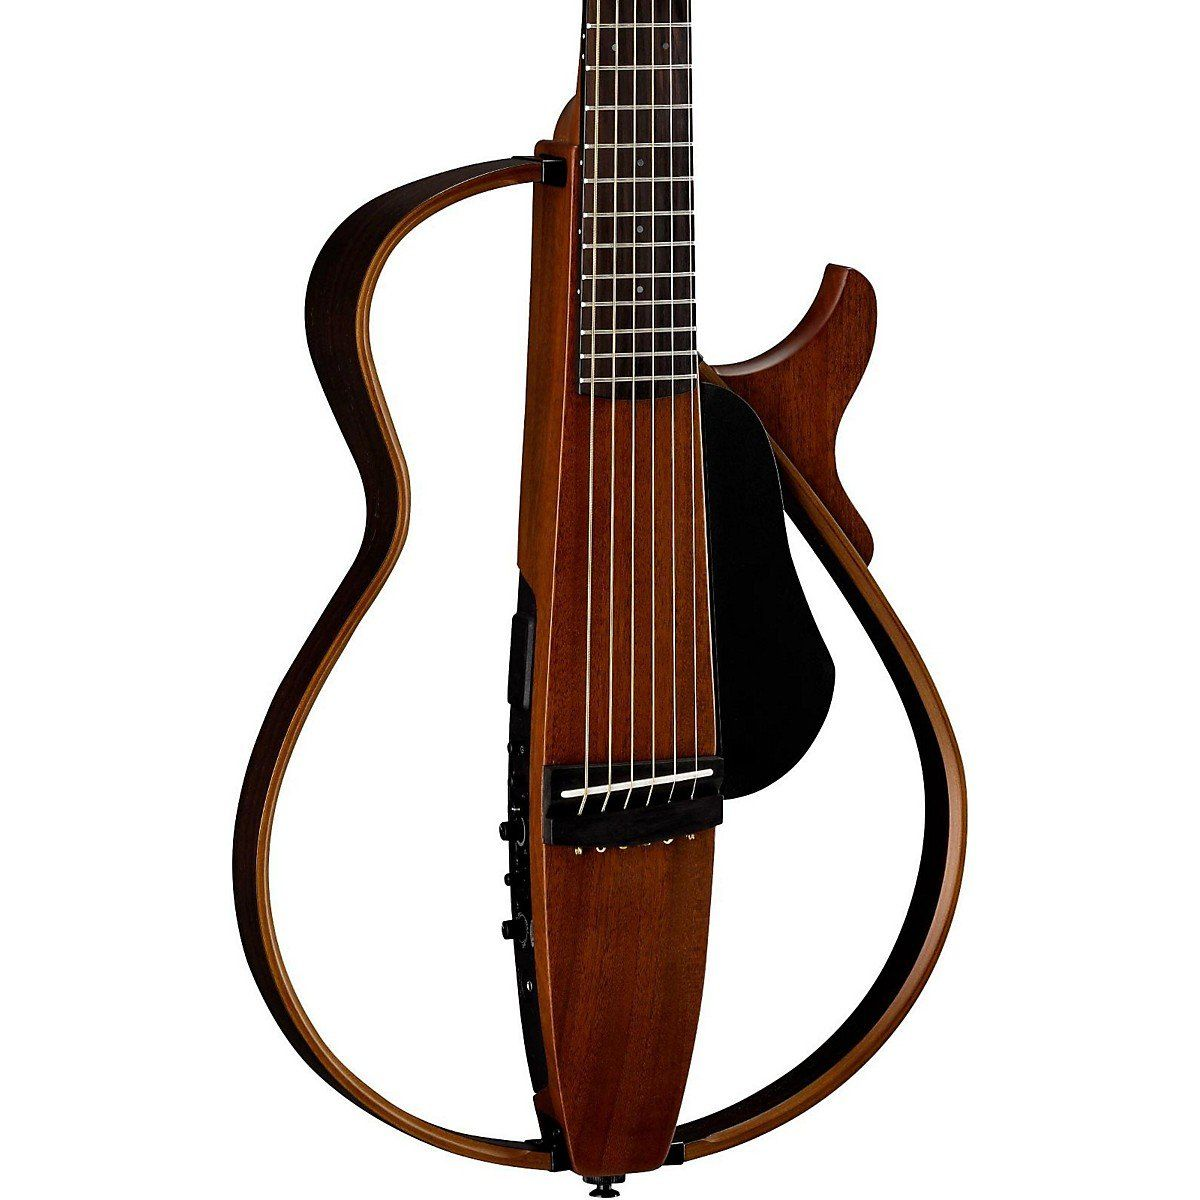 """Yamaha 2015 Steel String Silent Guitar with Gig Bag - Natural Finish . Authentic plugged-in sound by SRT PoweredSuper-compact, collapsible constructionUnique, striking looksUltra-quiet performanceSlim body like an electric guitarBody Body type: Classical Cutaway: Single cutaway Top wood: Mahogany Back & sides: Mahogany (no back) Bracing pattern: Not applicable Body finish: Gloss Orientation: Right handed Neck Neck shape: Nut width: 1.69"""" (43mm) Fingerboard: Rosewood Neck wood: Mahogany…"""